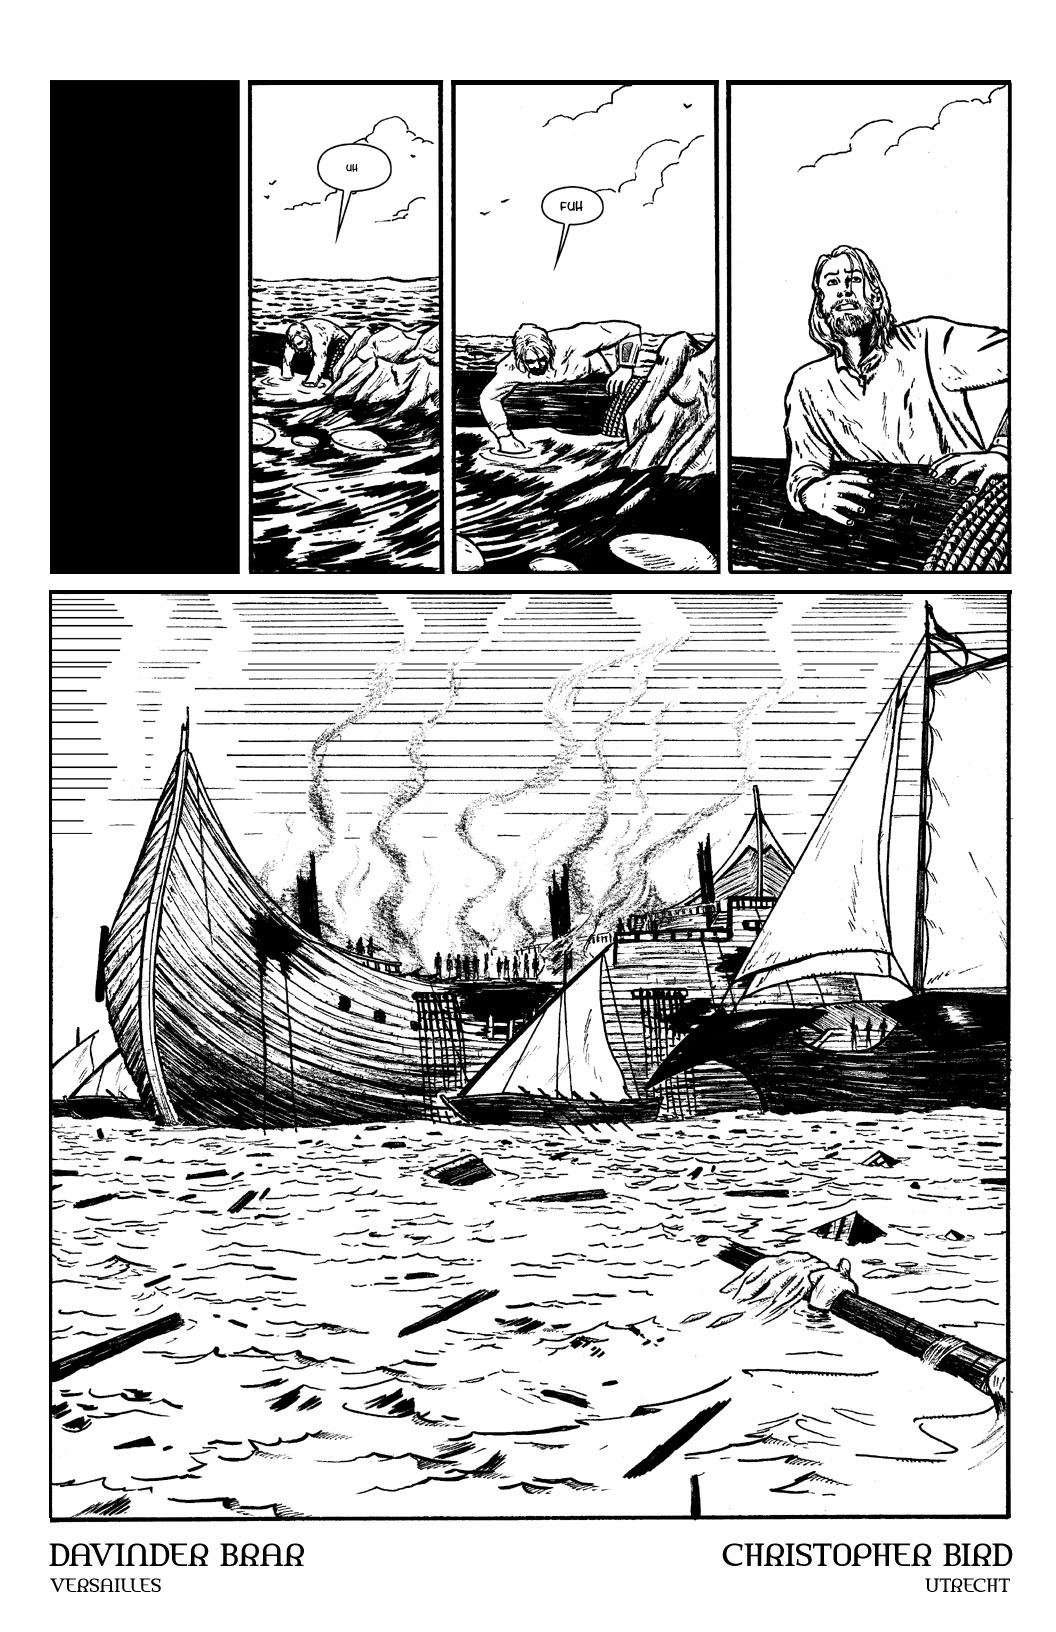 Book 1, page 19